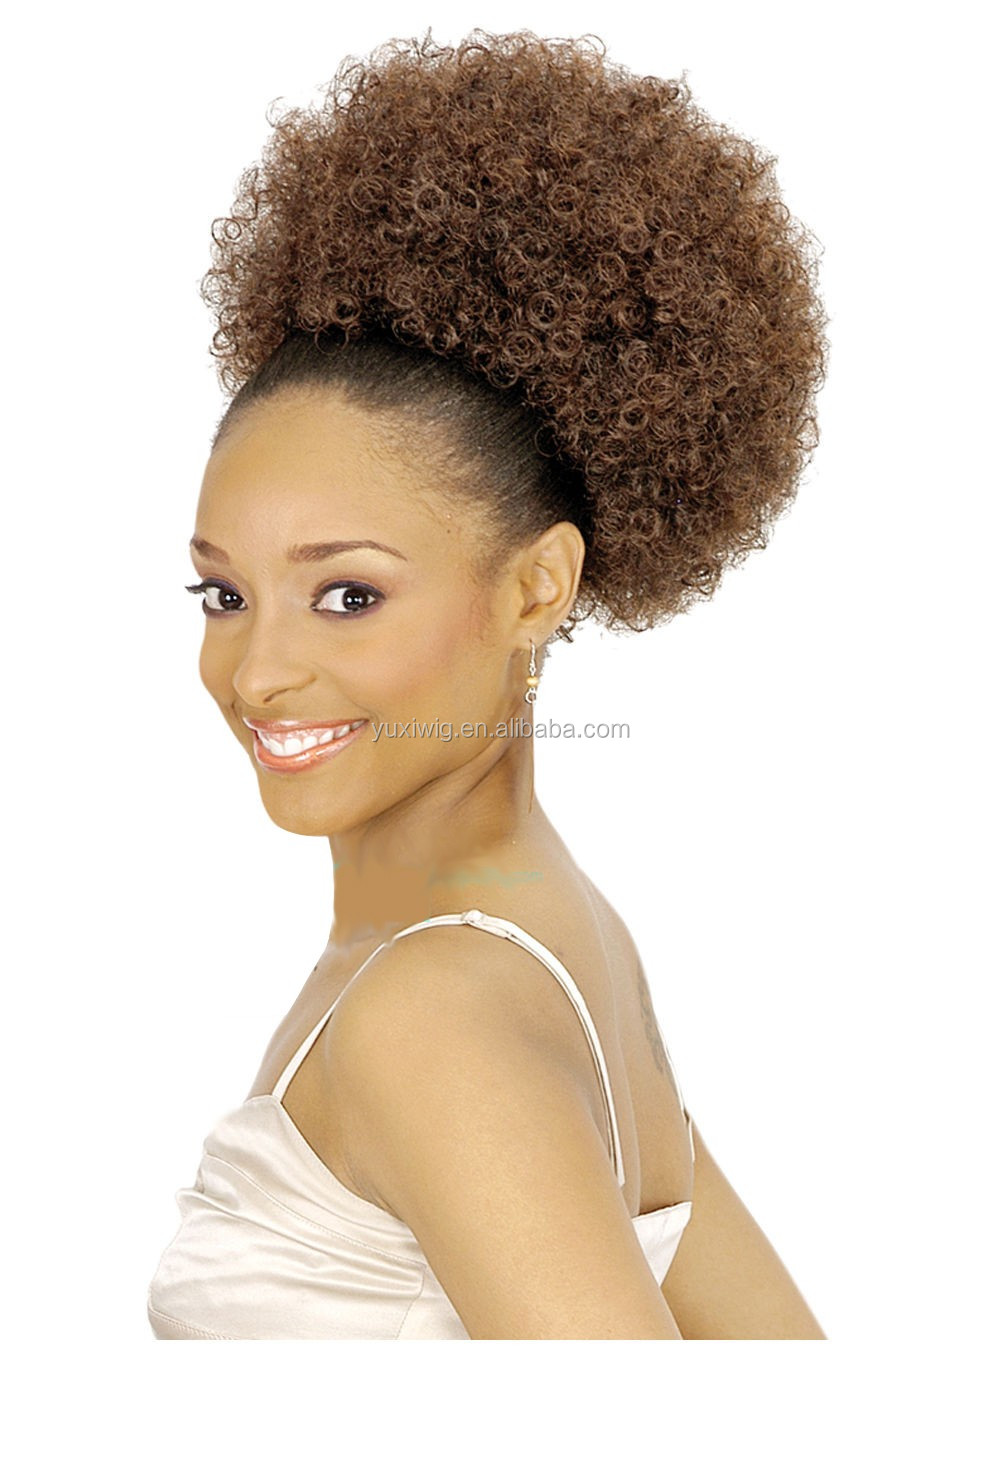 2018 Afro Ponytail Puff In Color #27/natural color